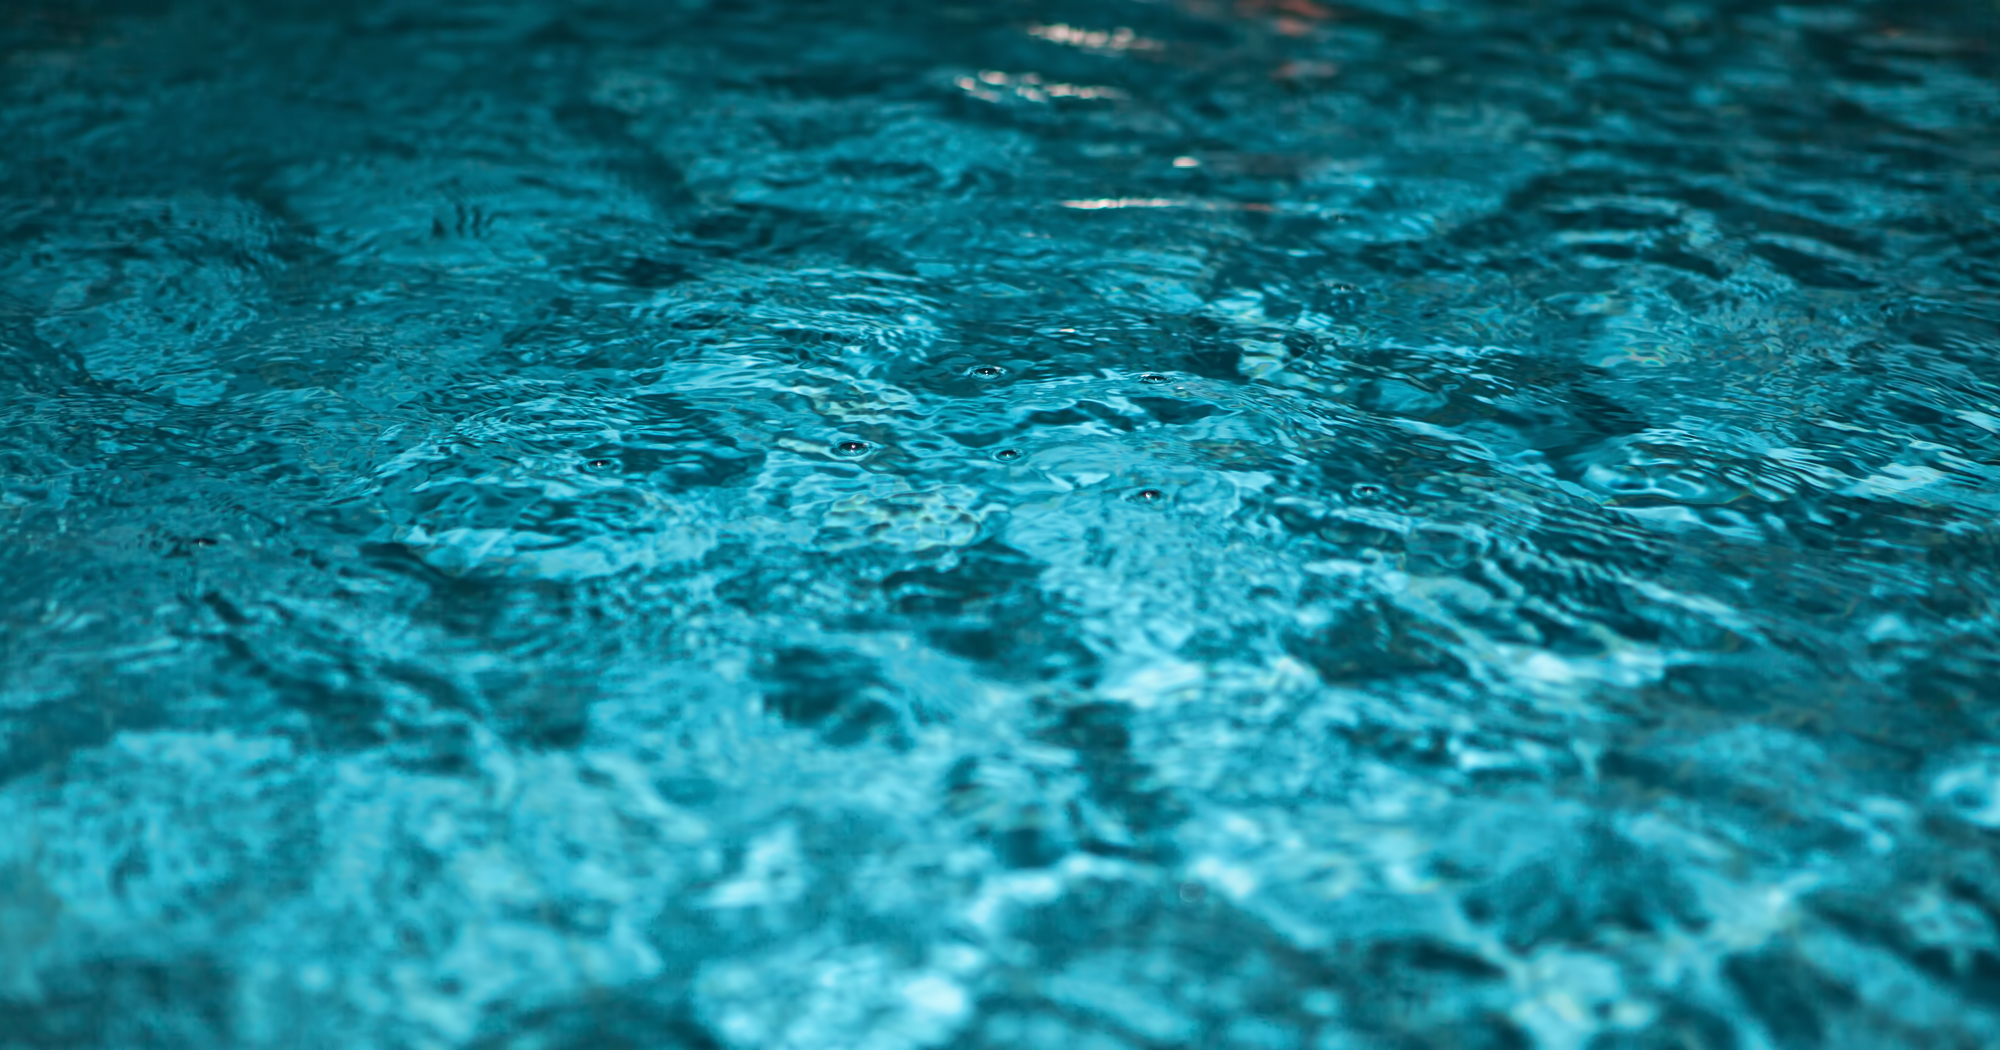 Blue water, Droplet, Water, Transparent, Pure, HQ Photo